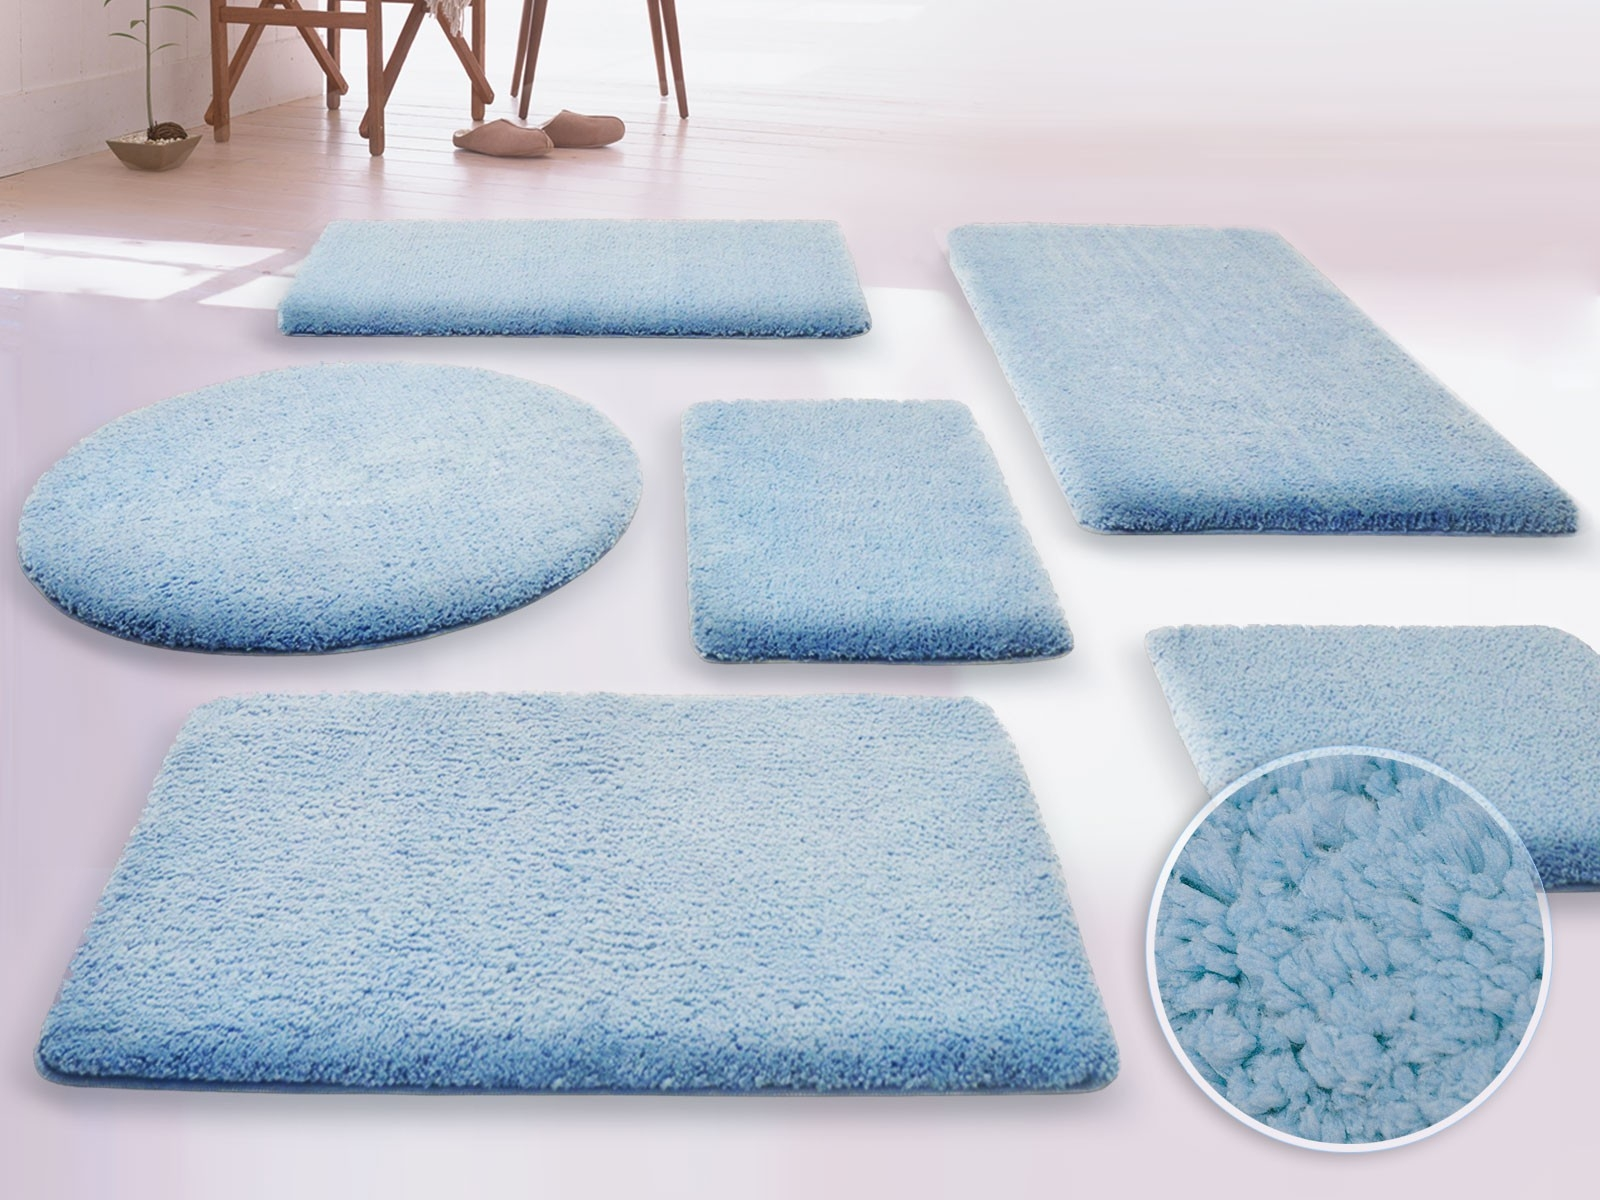 Extra Large Round Bathroom Rugextra large round rugs roselawnlutheran